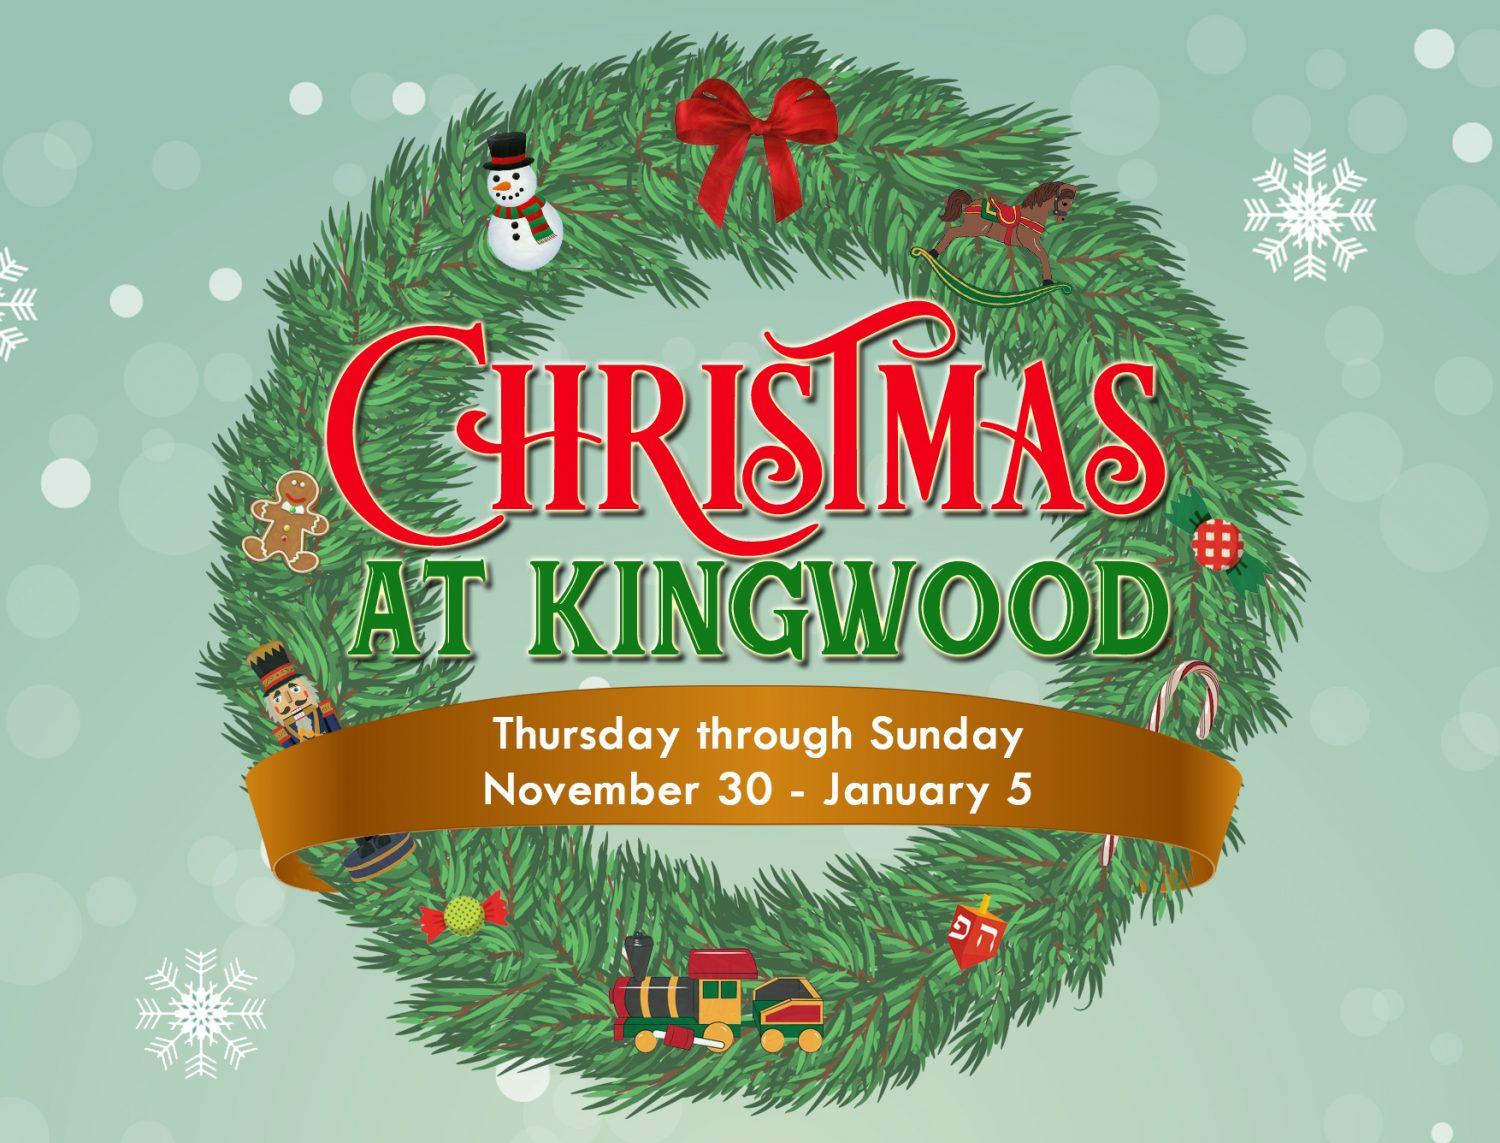 Christmas at Kingwood